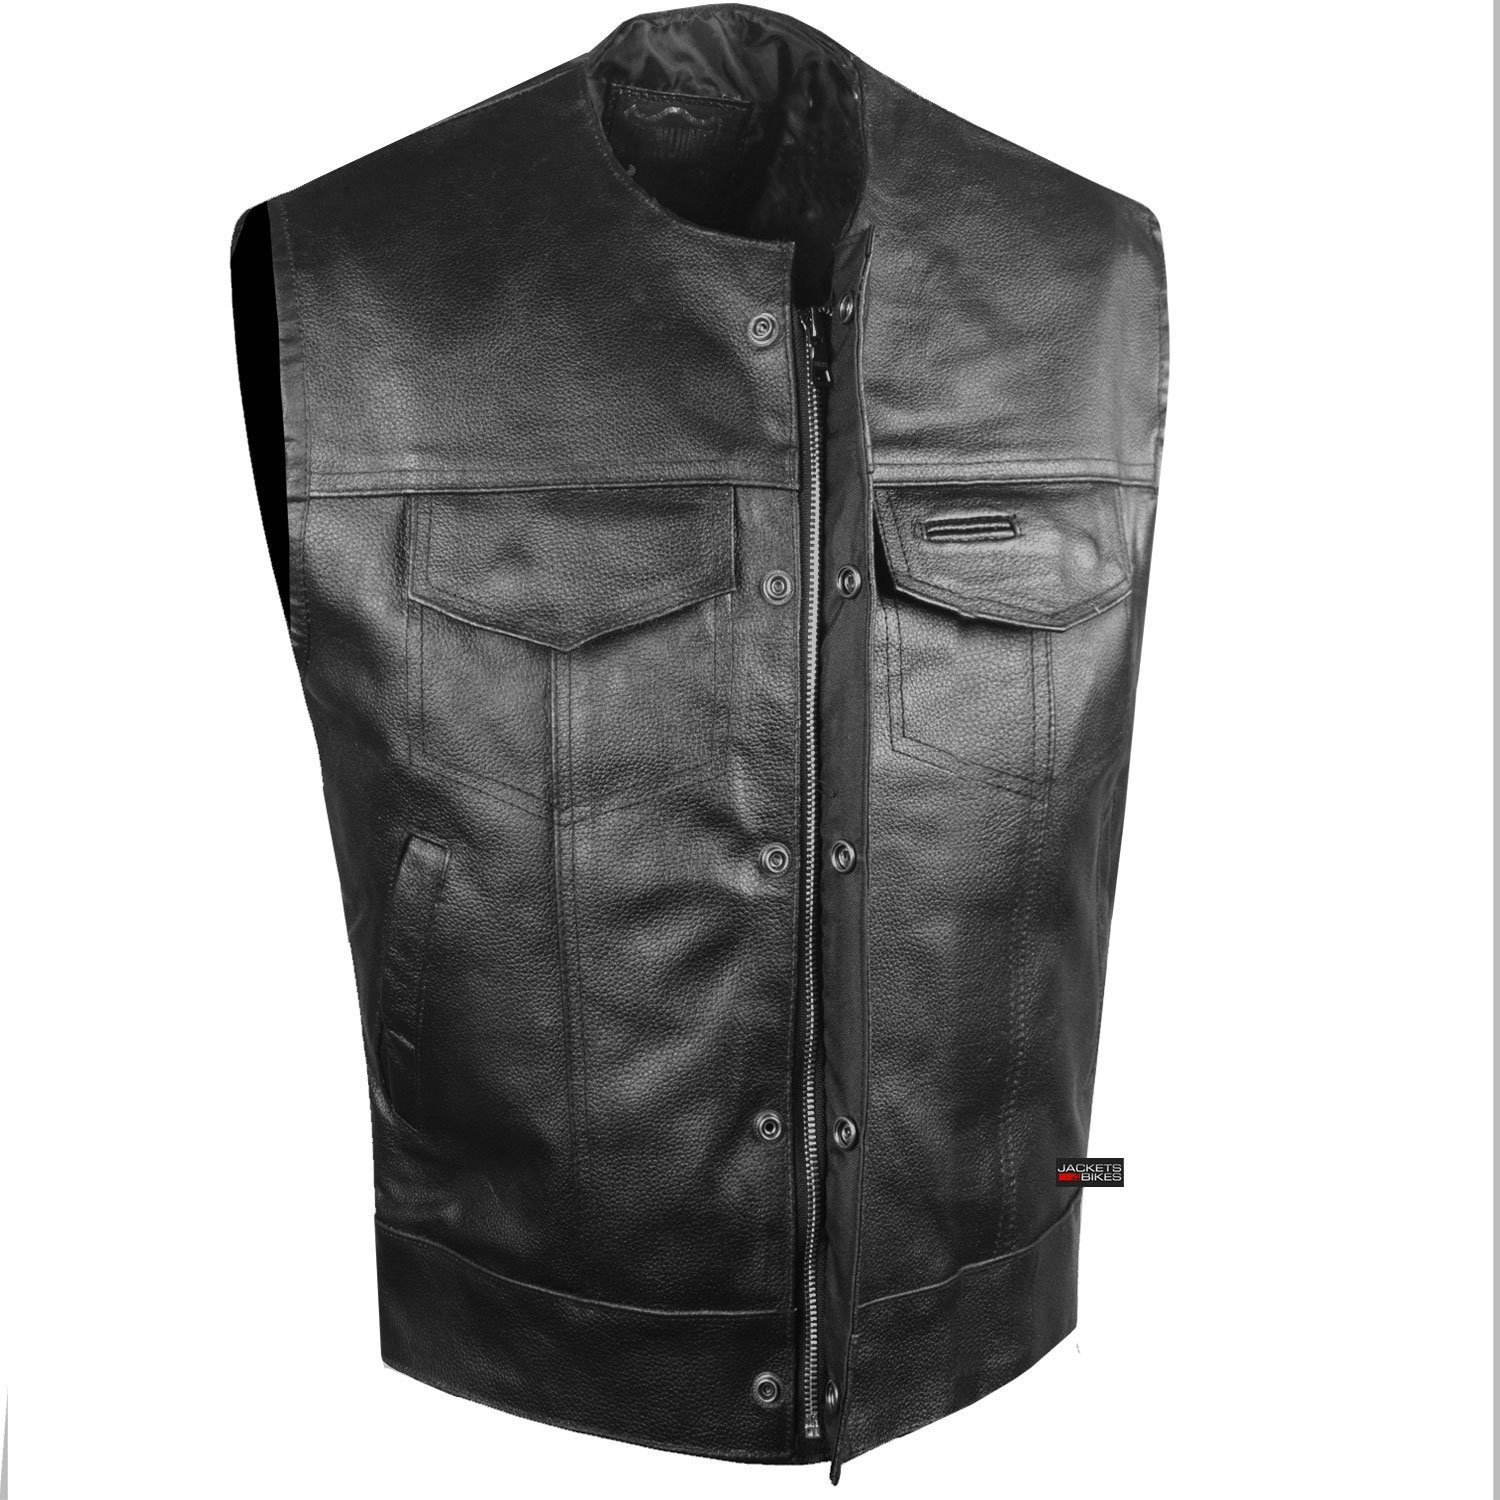 SOA Collarless Leather Vest Anarchy Motorcycle Biker Concealed Carry Black M